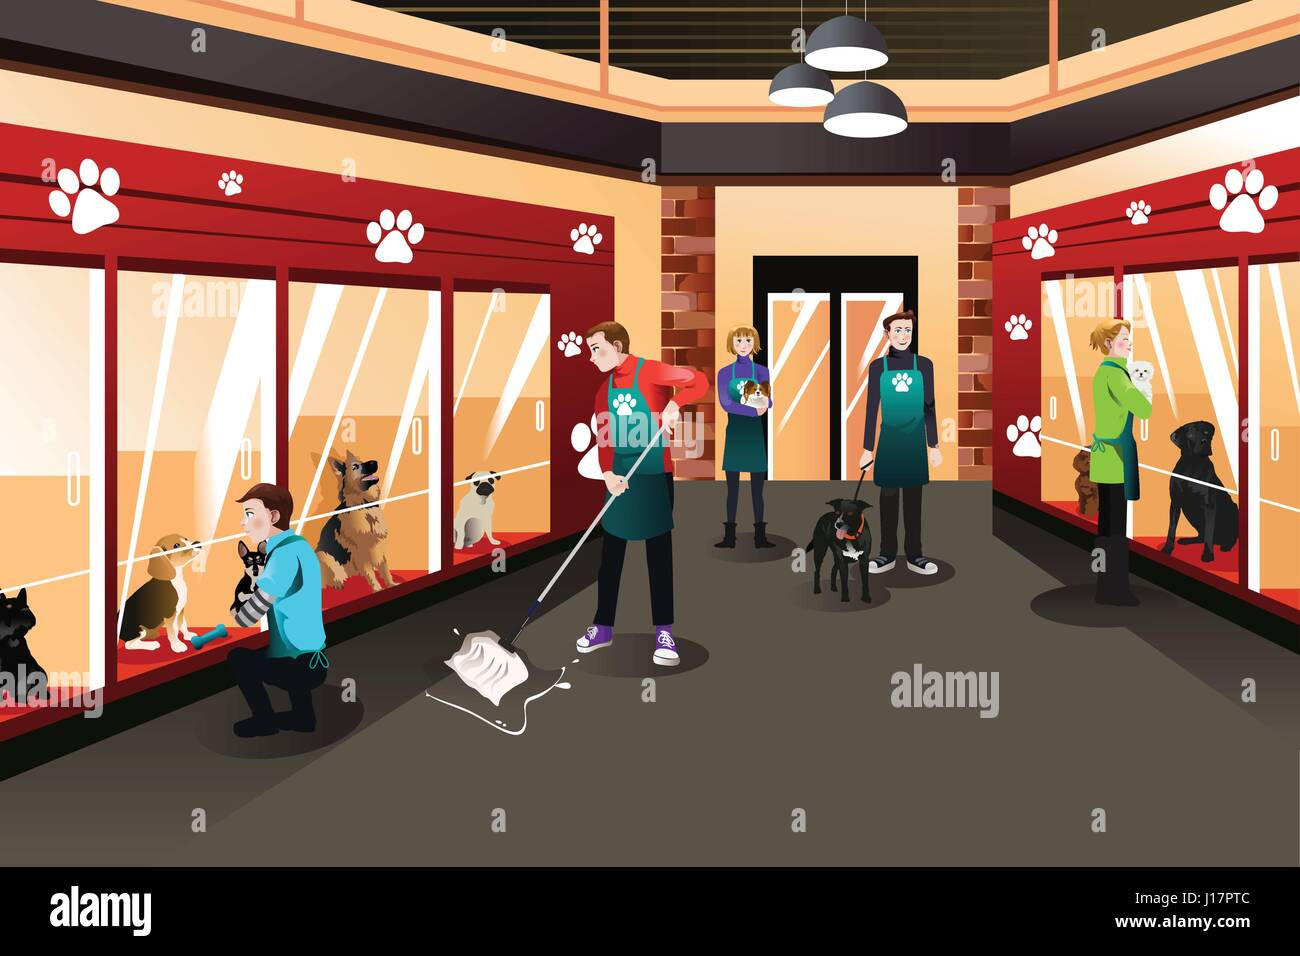 A vector illustration of people working in animal shelter - Stock Vector